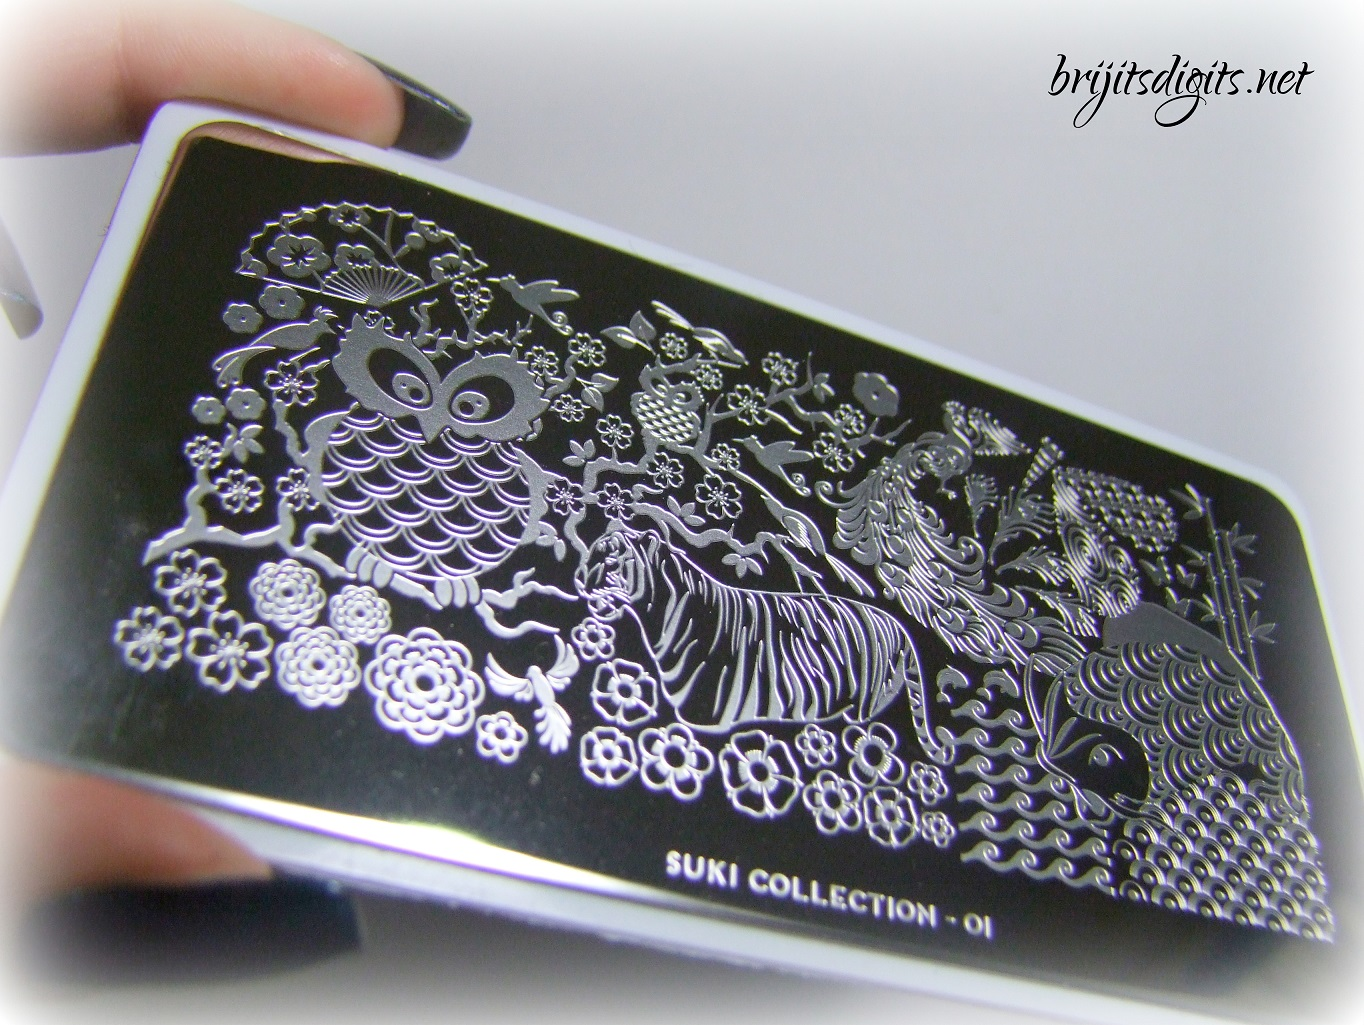 MoYou-London Suki Collection 01 Nail Art Stamping Plate | Brijit\'s ...